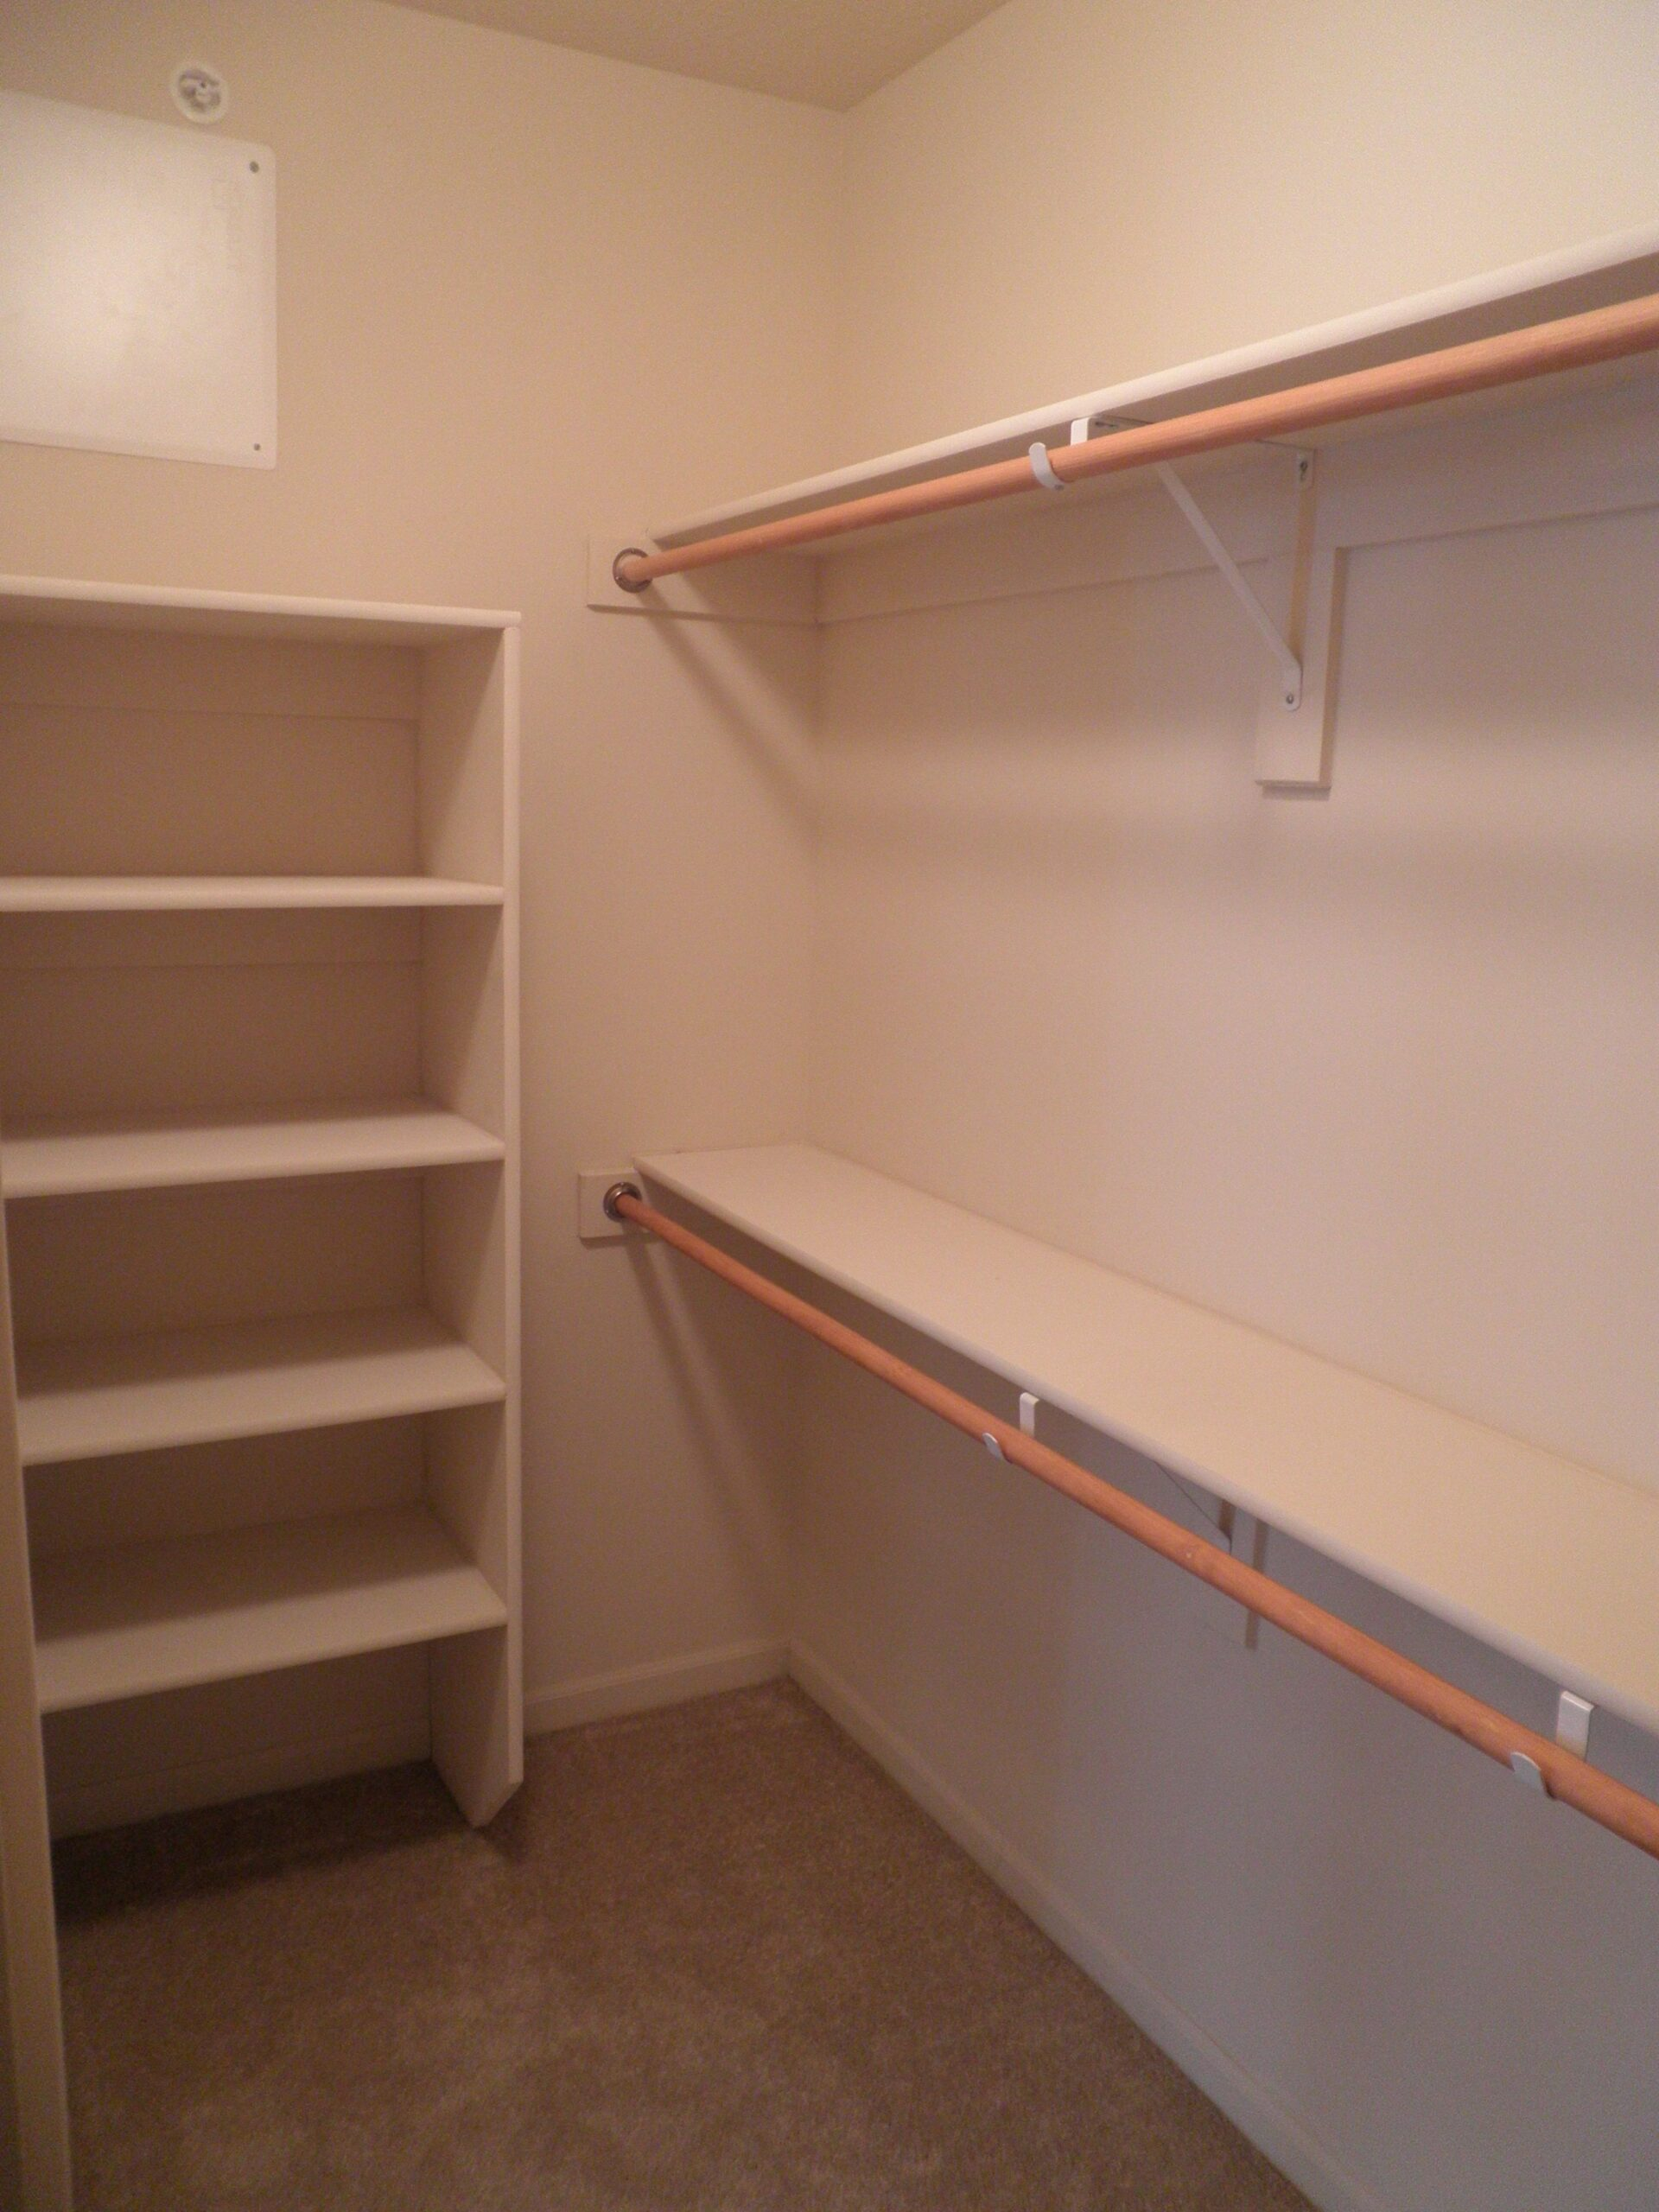 Walk in closet shelving … (With images) | Closet layout ...